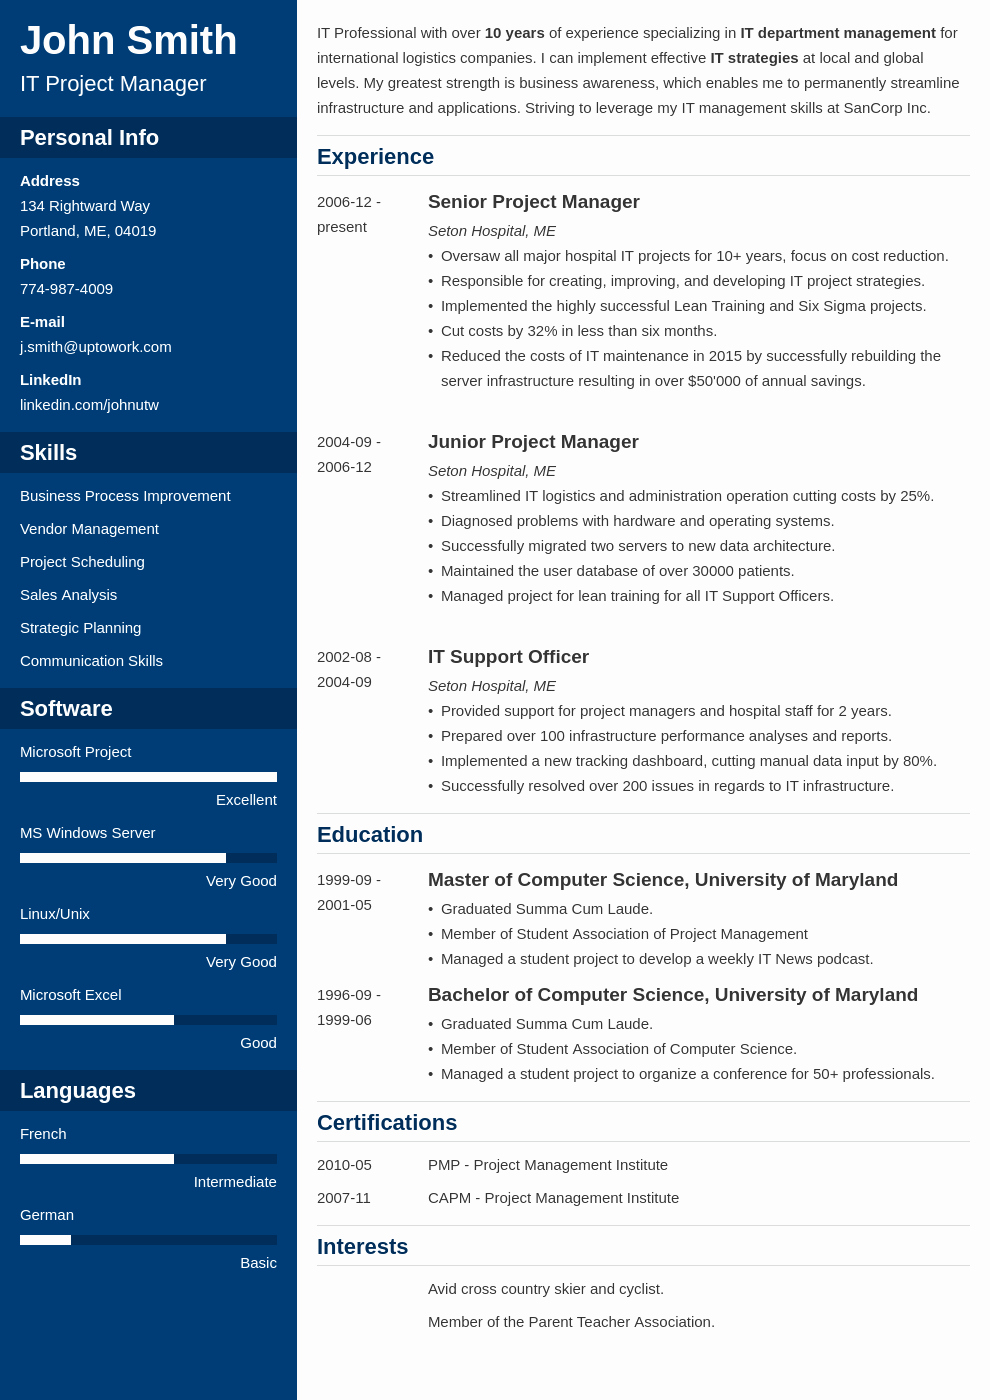 Download Free Professional Resume Templates New Make A Professional Resume Template